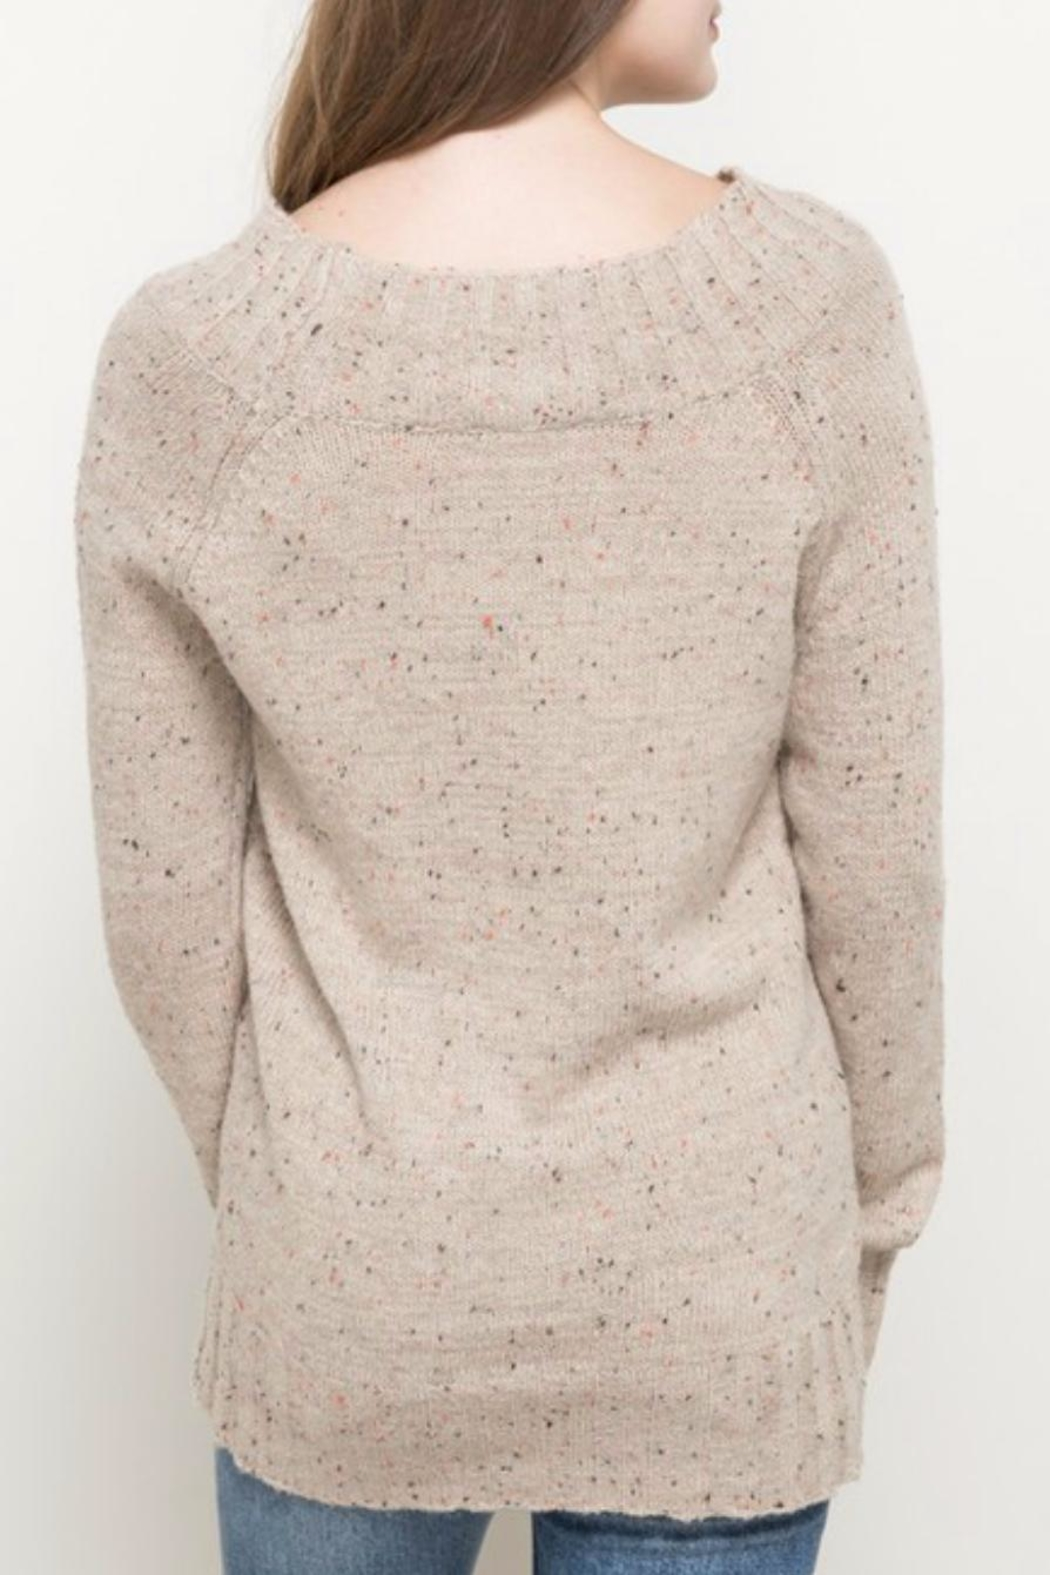 Hem & Thread Oatmeal Sprinkled Sweater - Side Cropped Image